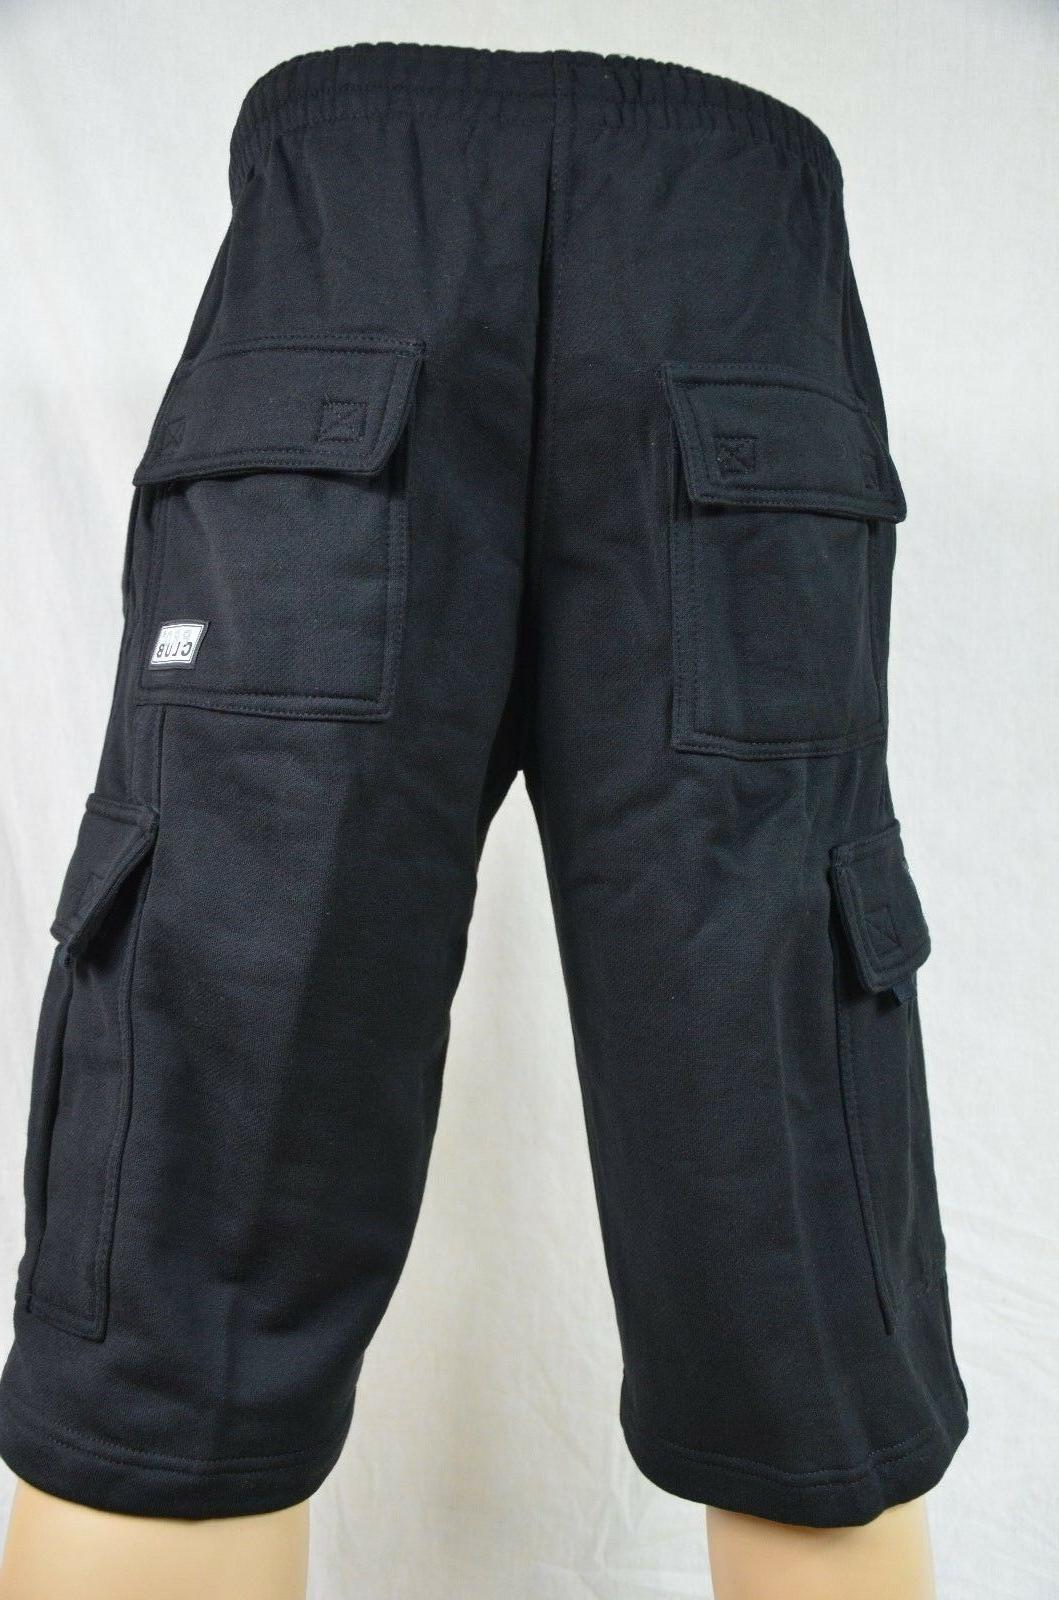 NWT Weight Mens Sweatpants